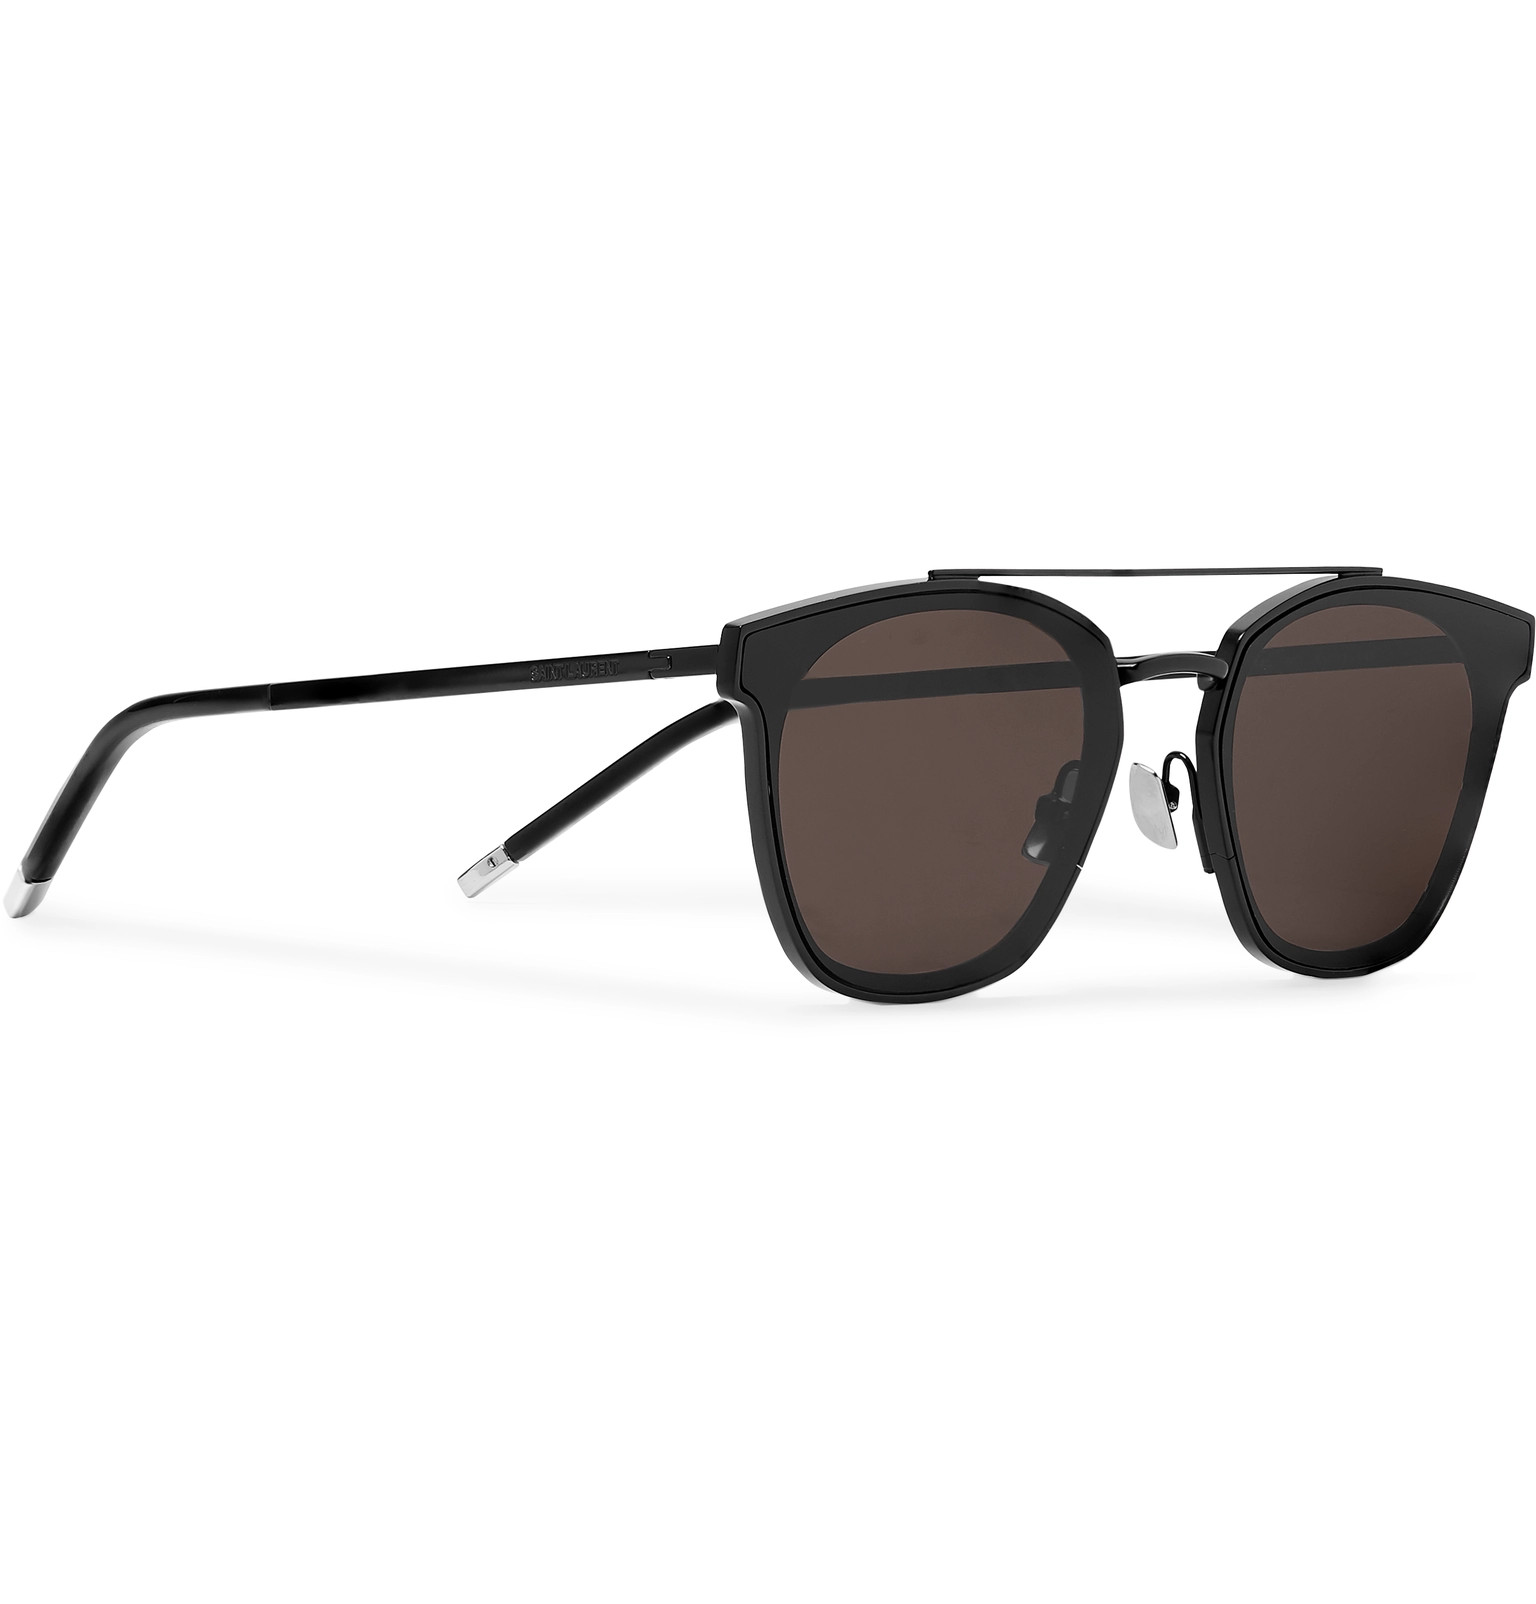 7e01fdb5ca SAINT LAURENT - Aviator-Style Black Metal Sunglasses